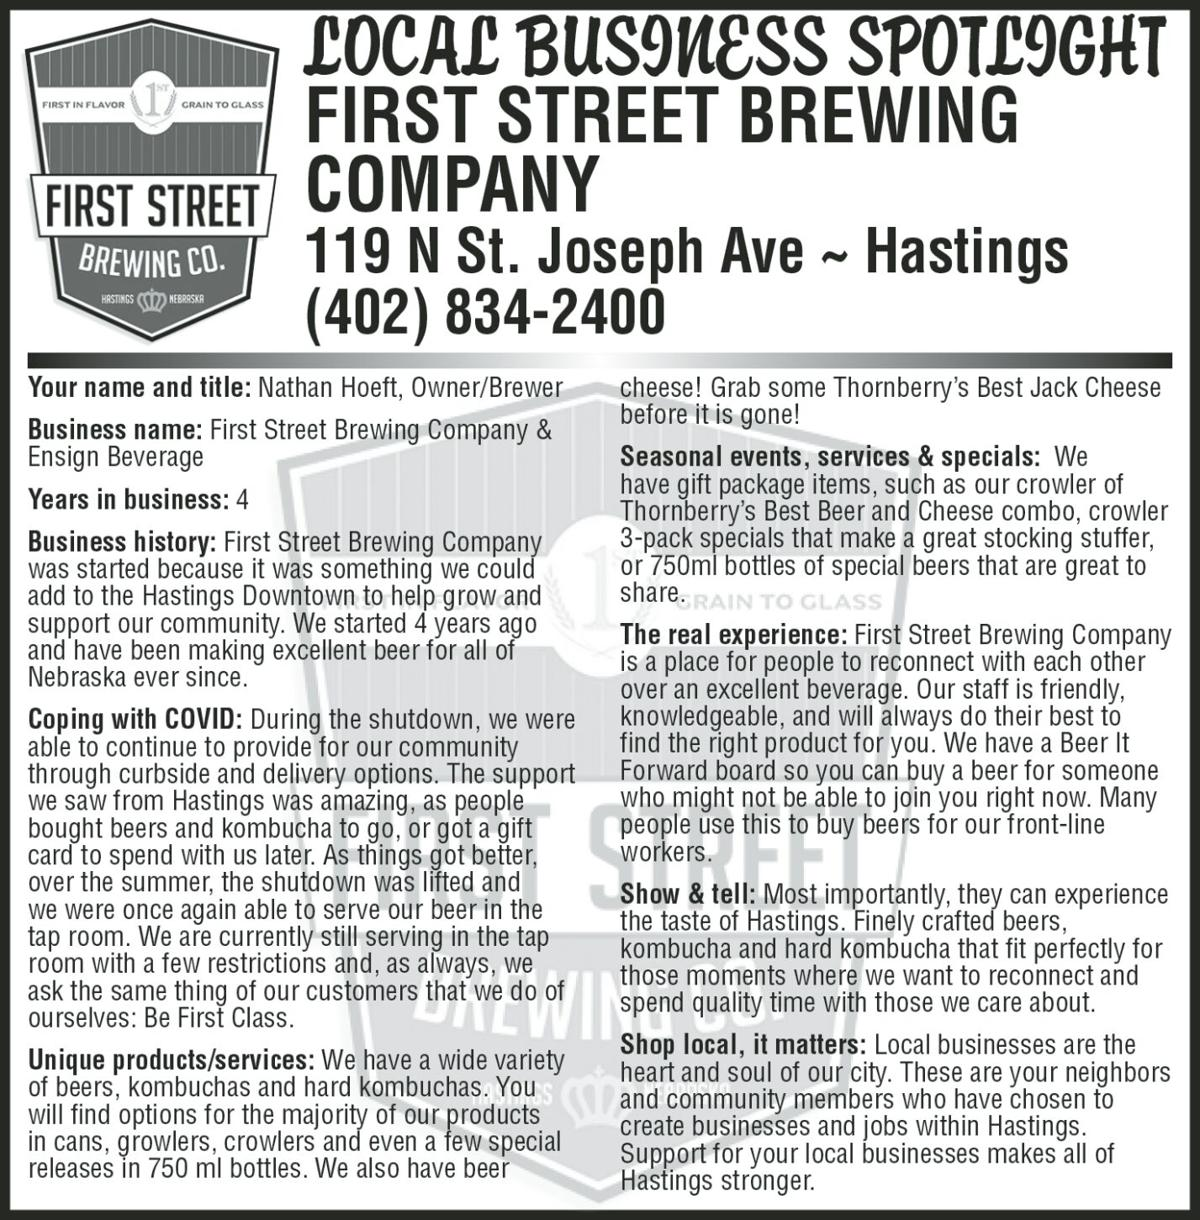 First Street Brewing